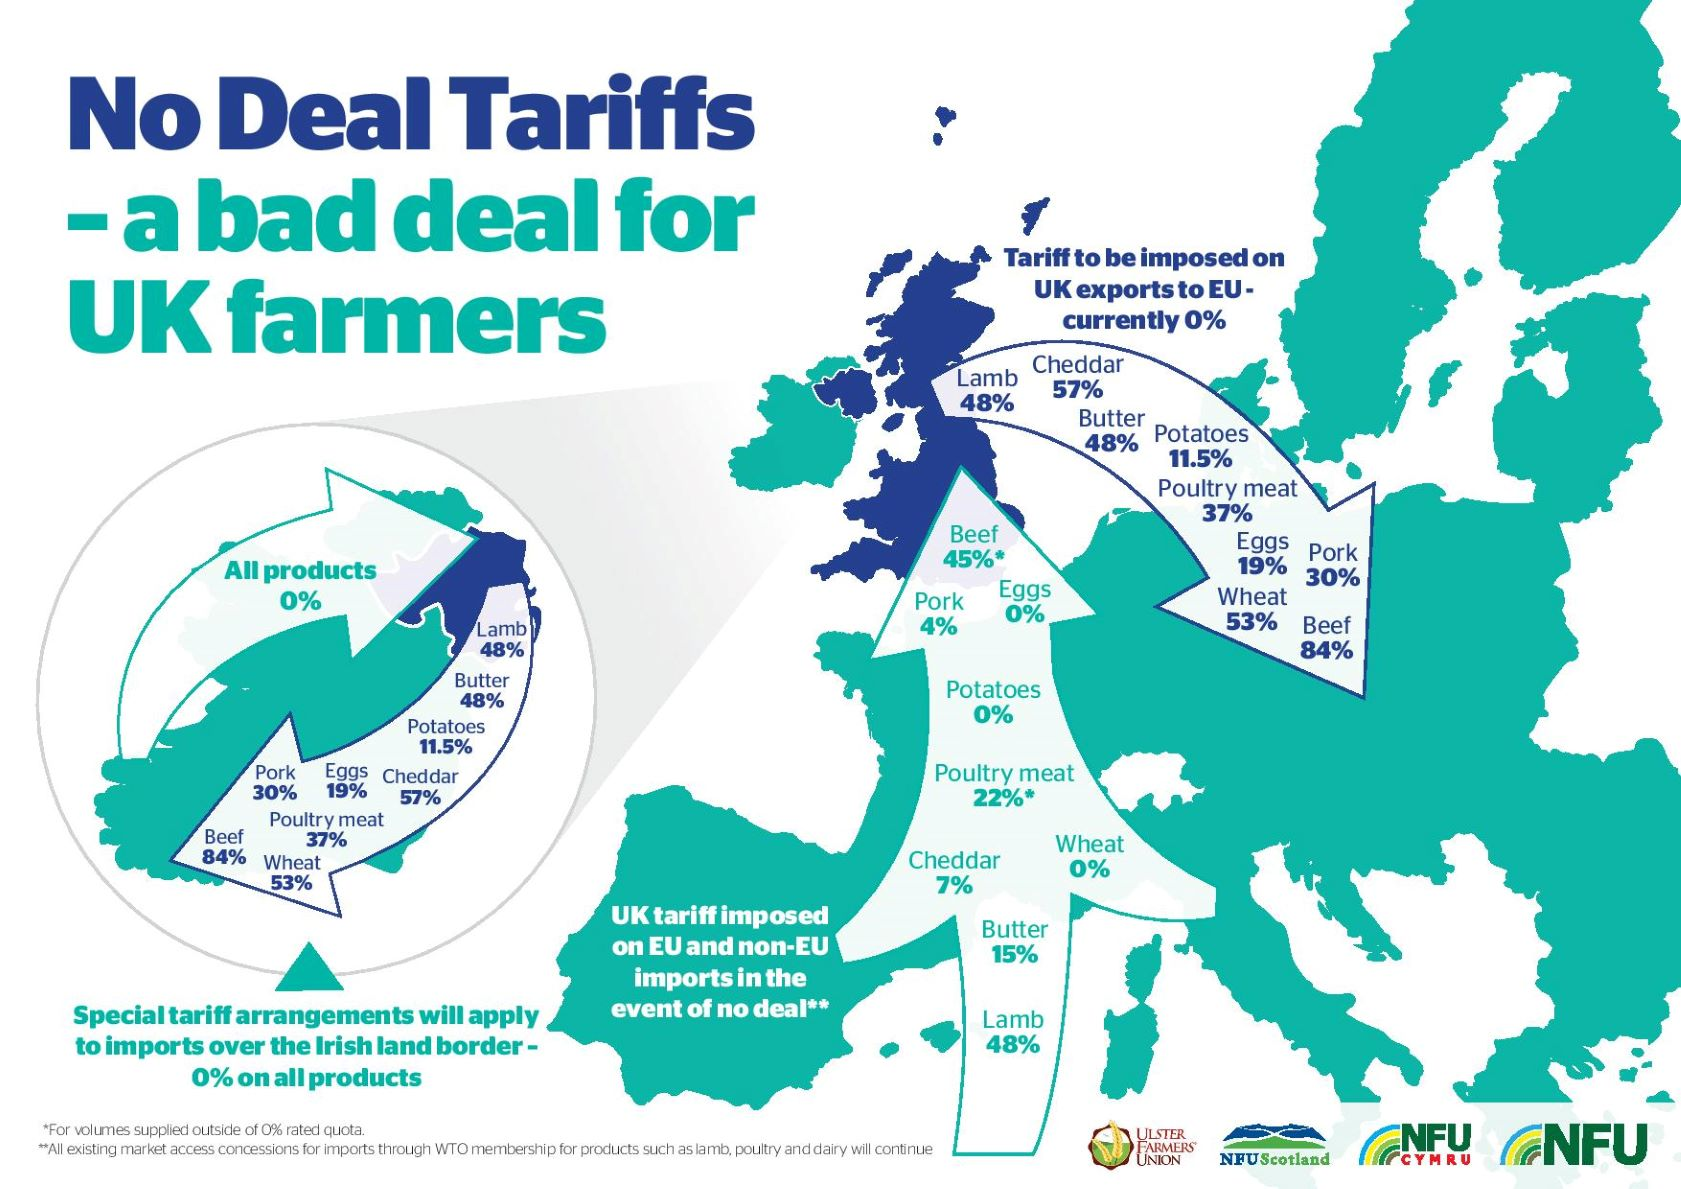 0319 - No Deal Tariff Infographic-page-001